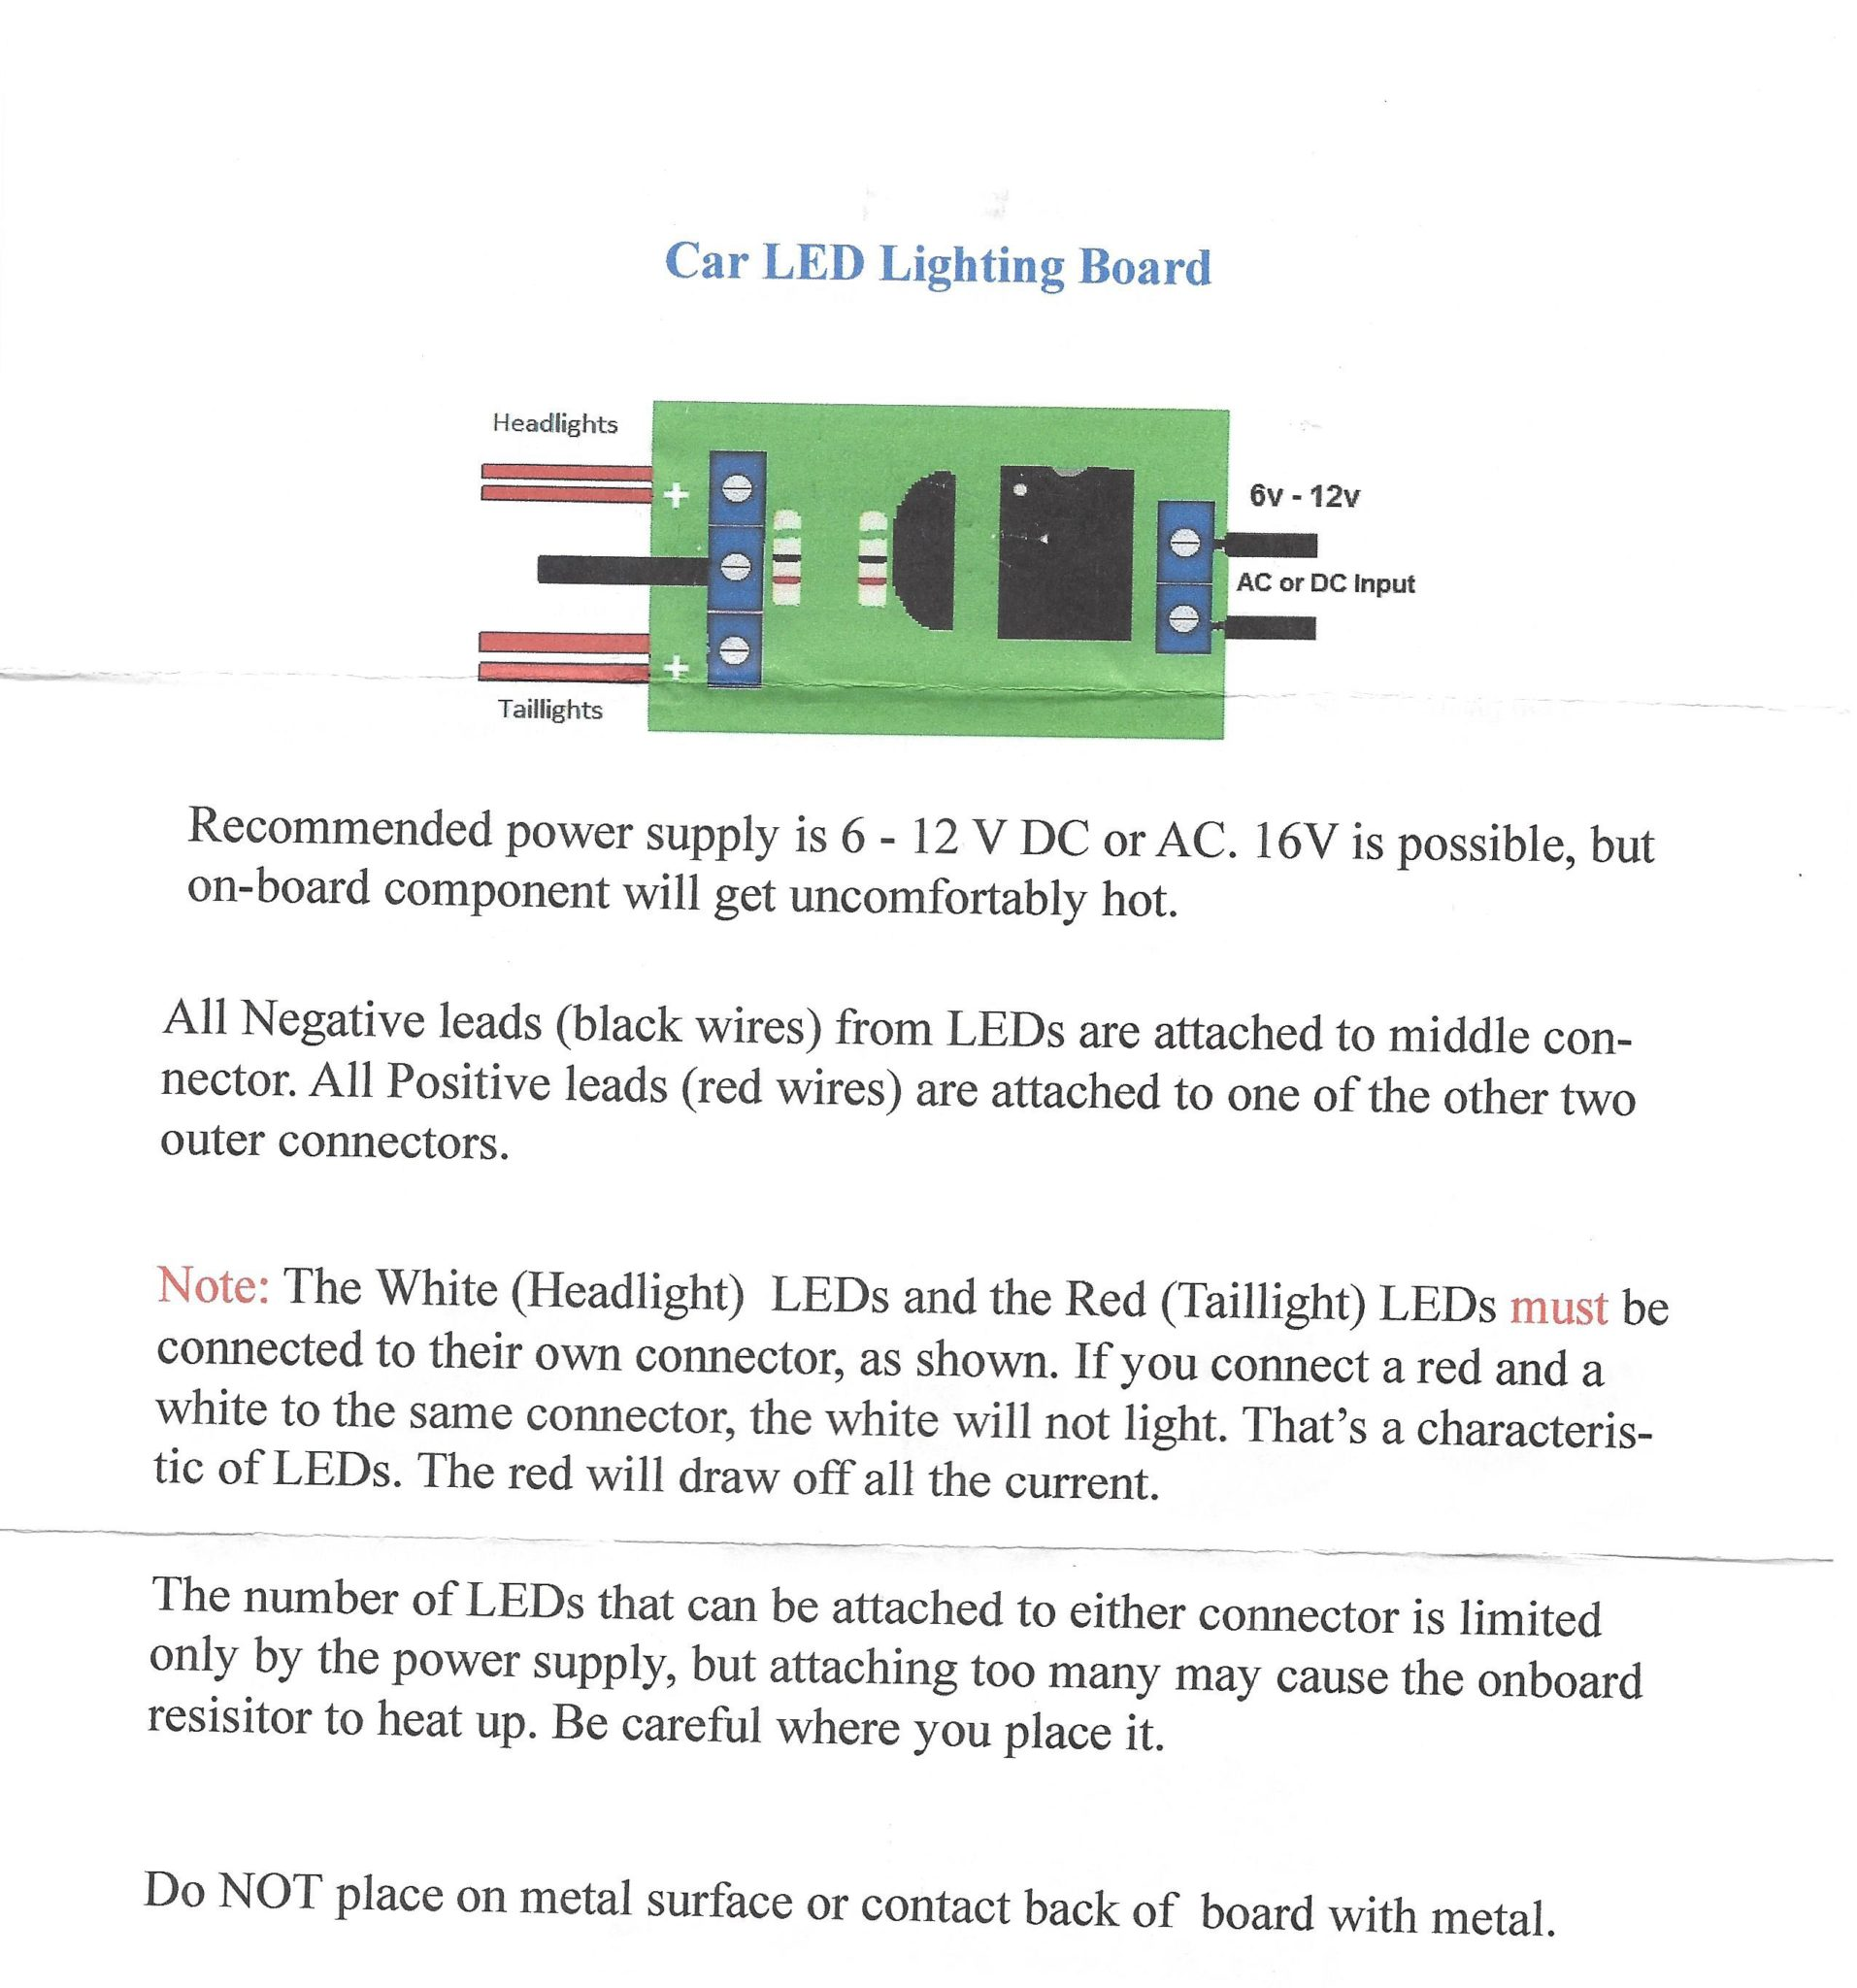 Wiring Car Lighting Board Largest Diagram Database Vehicle Led Wire Ip155 Ho Scale Warm White Head Lights And Red Tail By Rh Lights4models Com Circuit